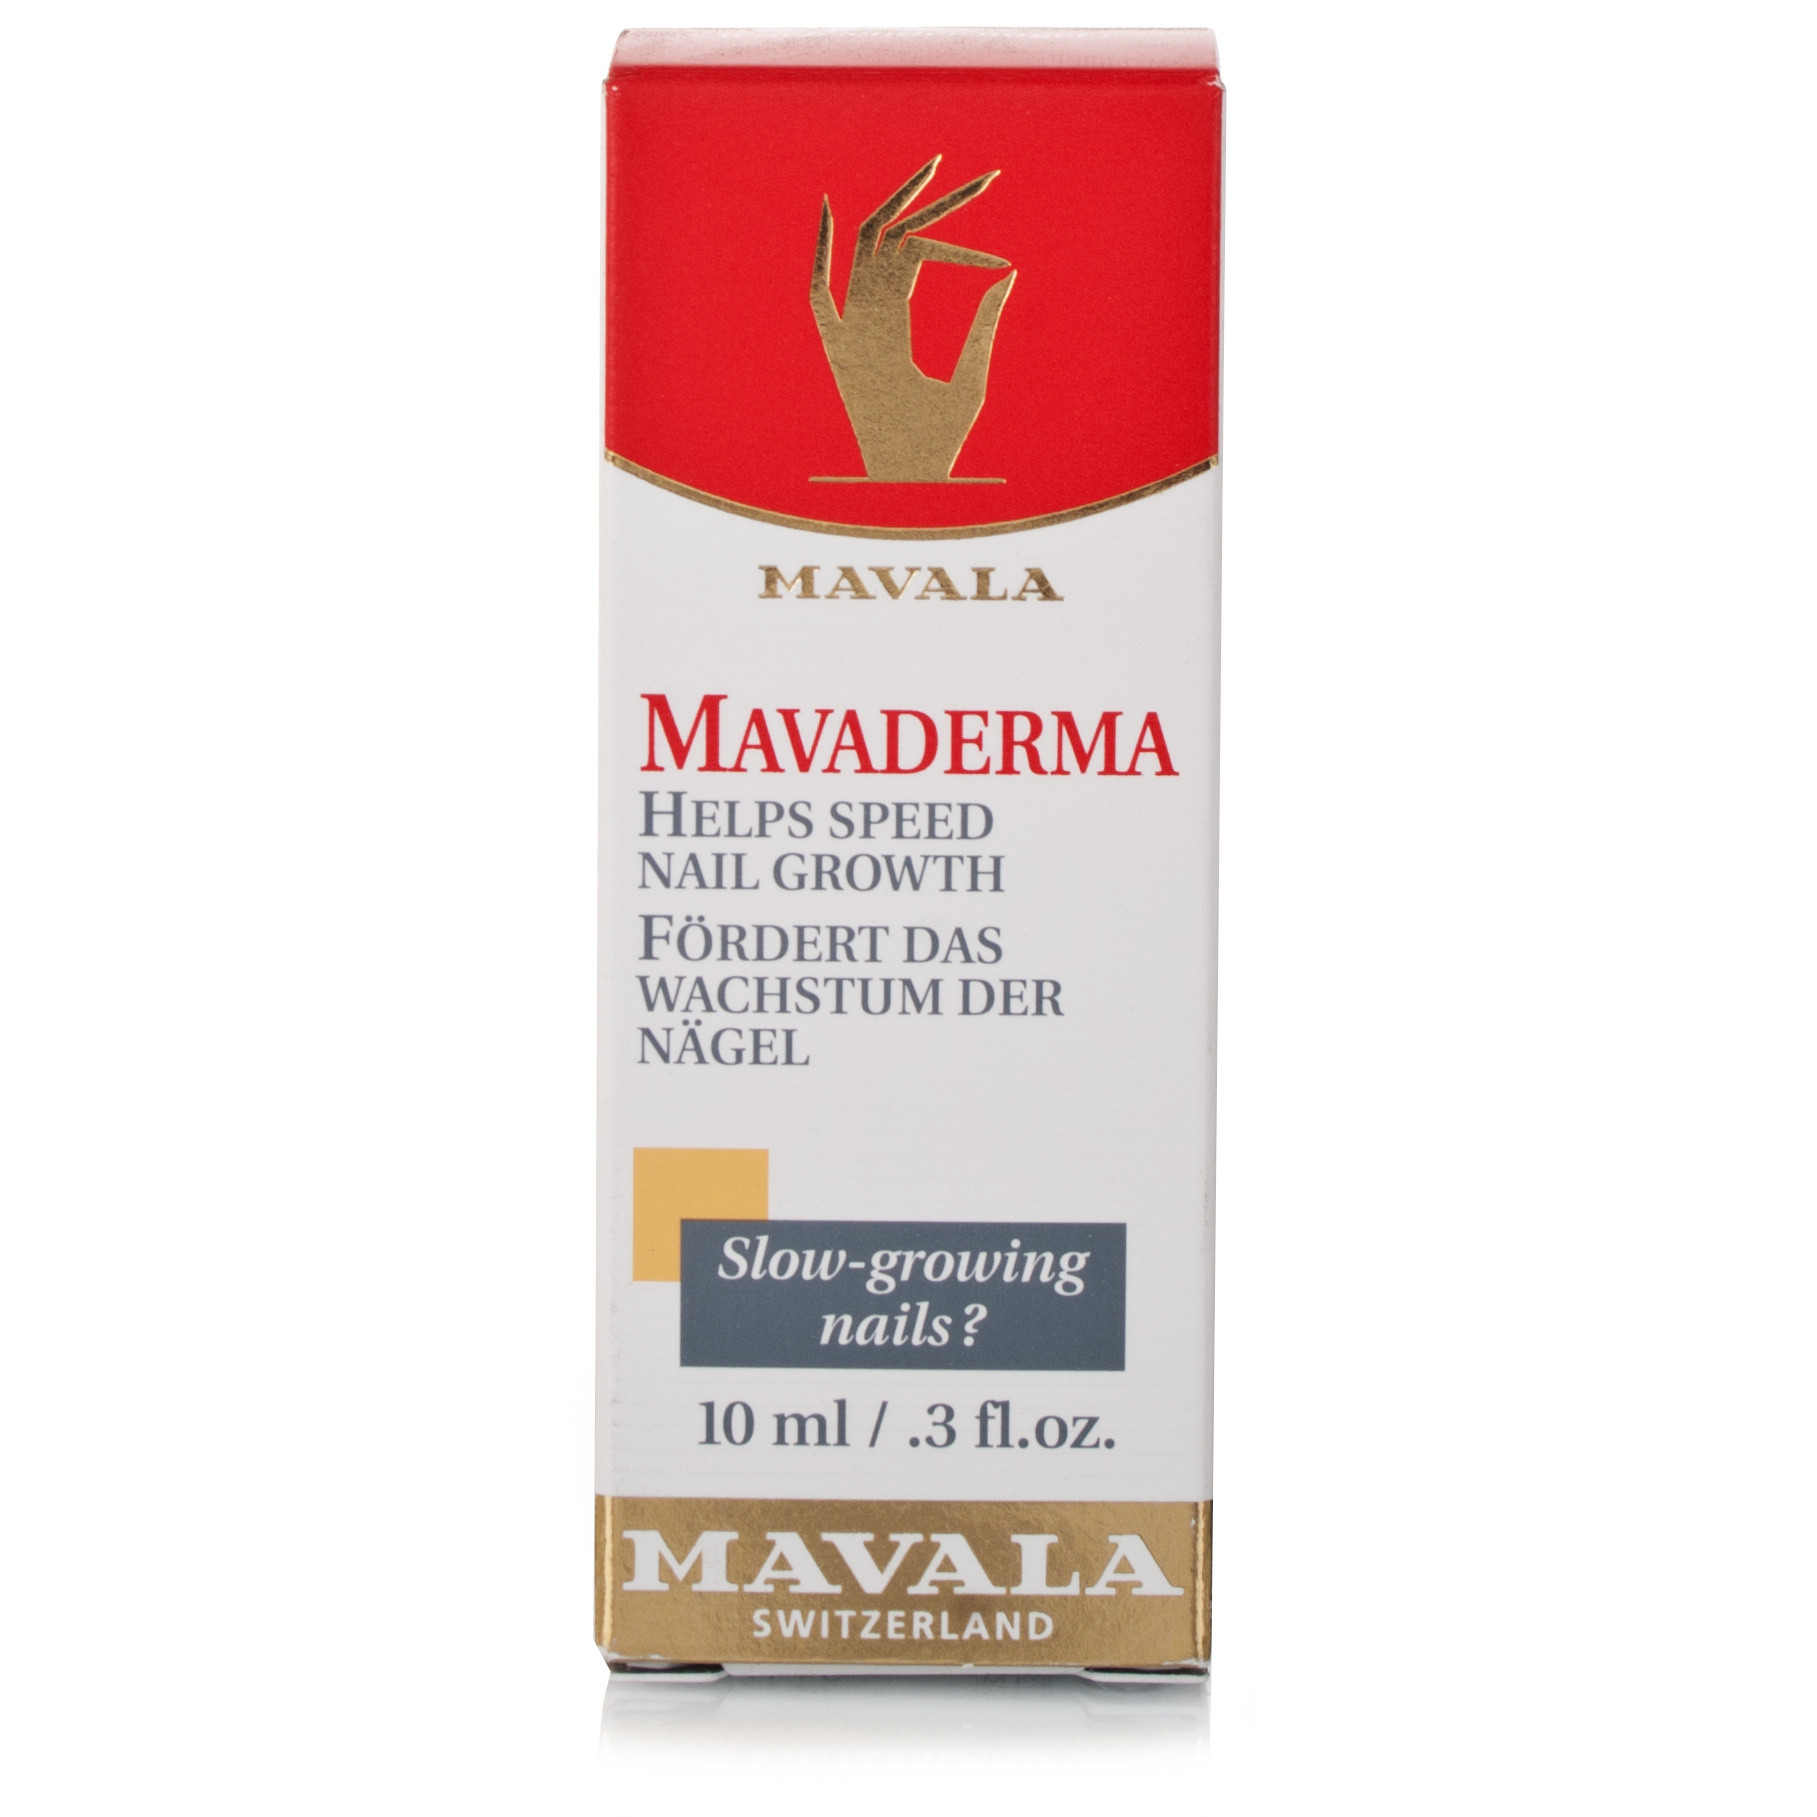 Mavala Mavaderma Nutritive Oil